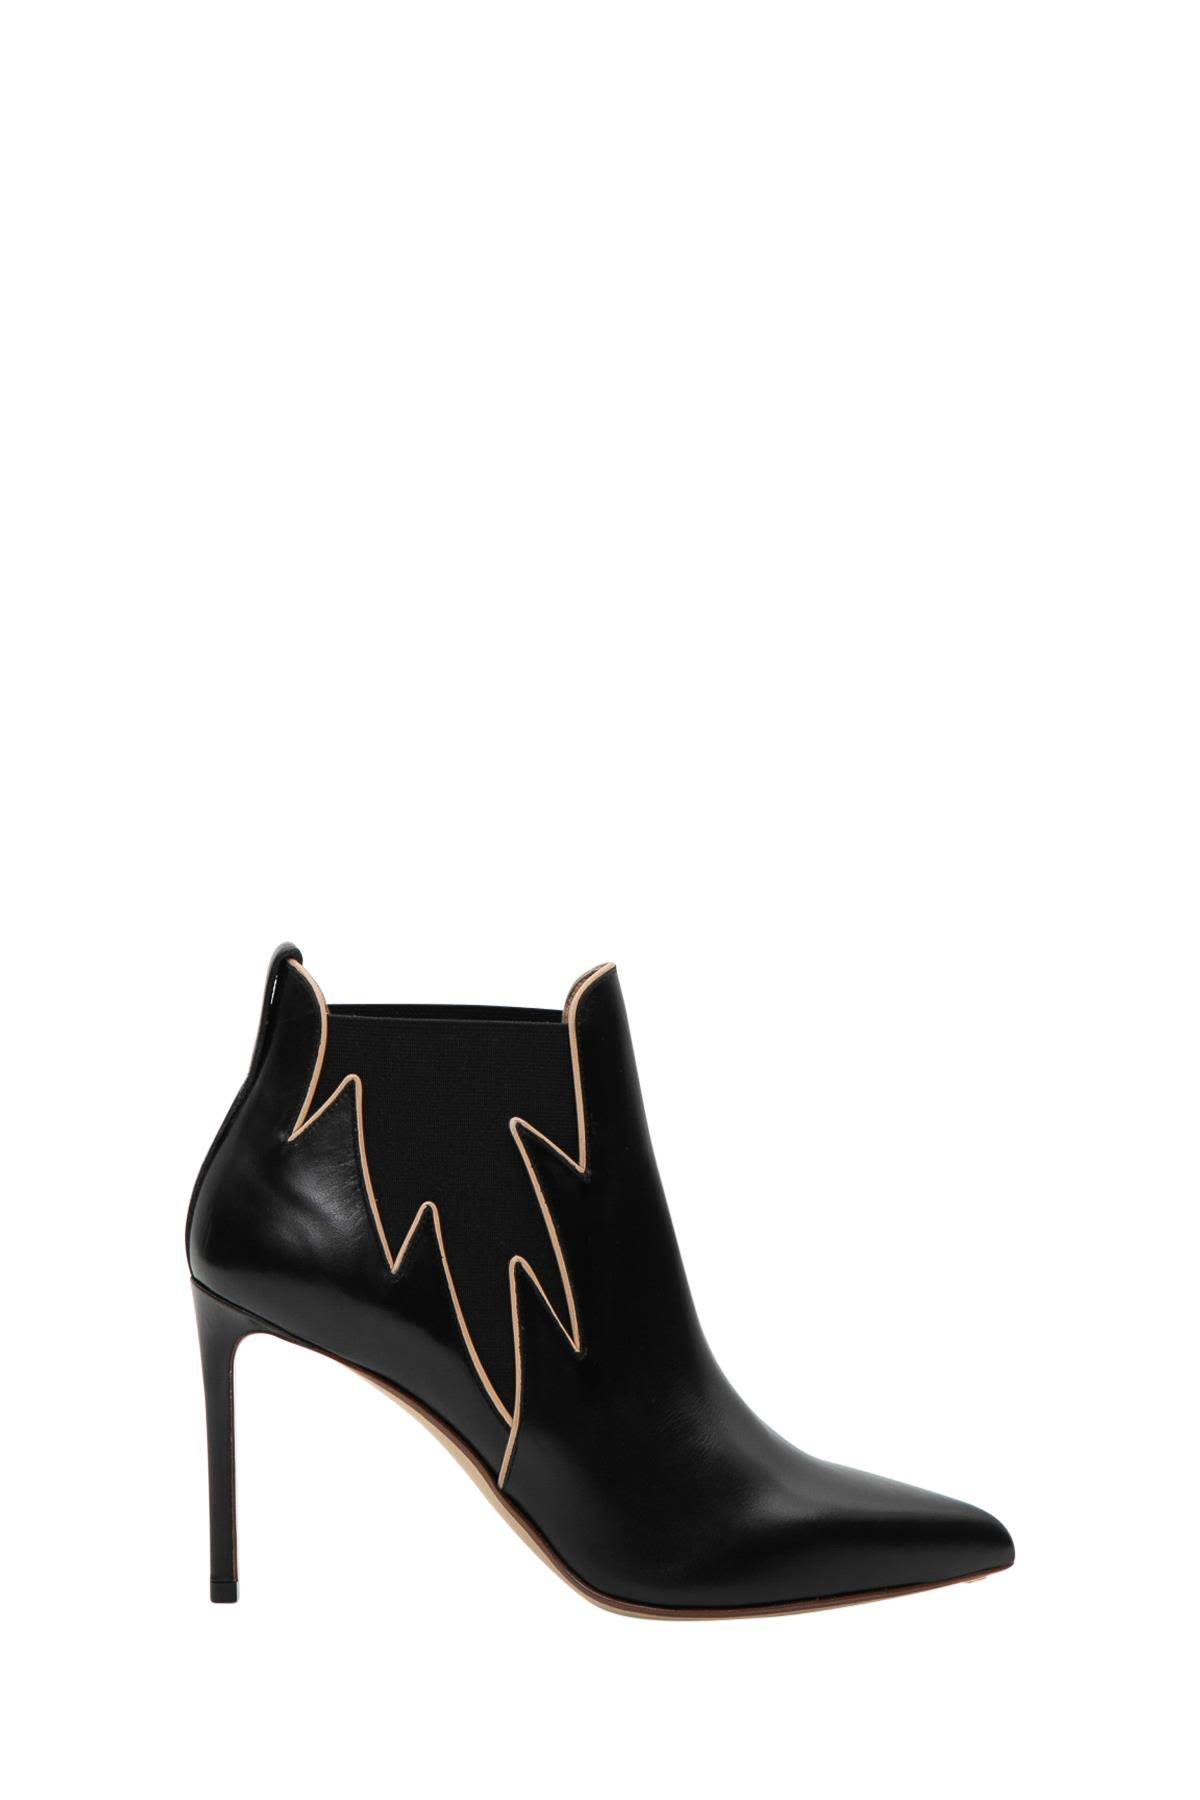 FRANCESCO RUSSO FLAME ANKLE BOOTS